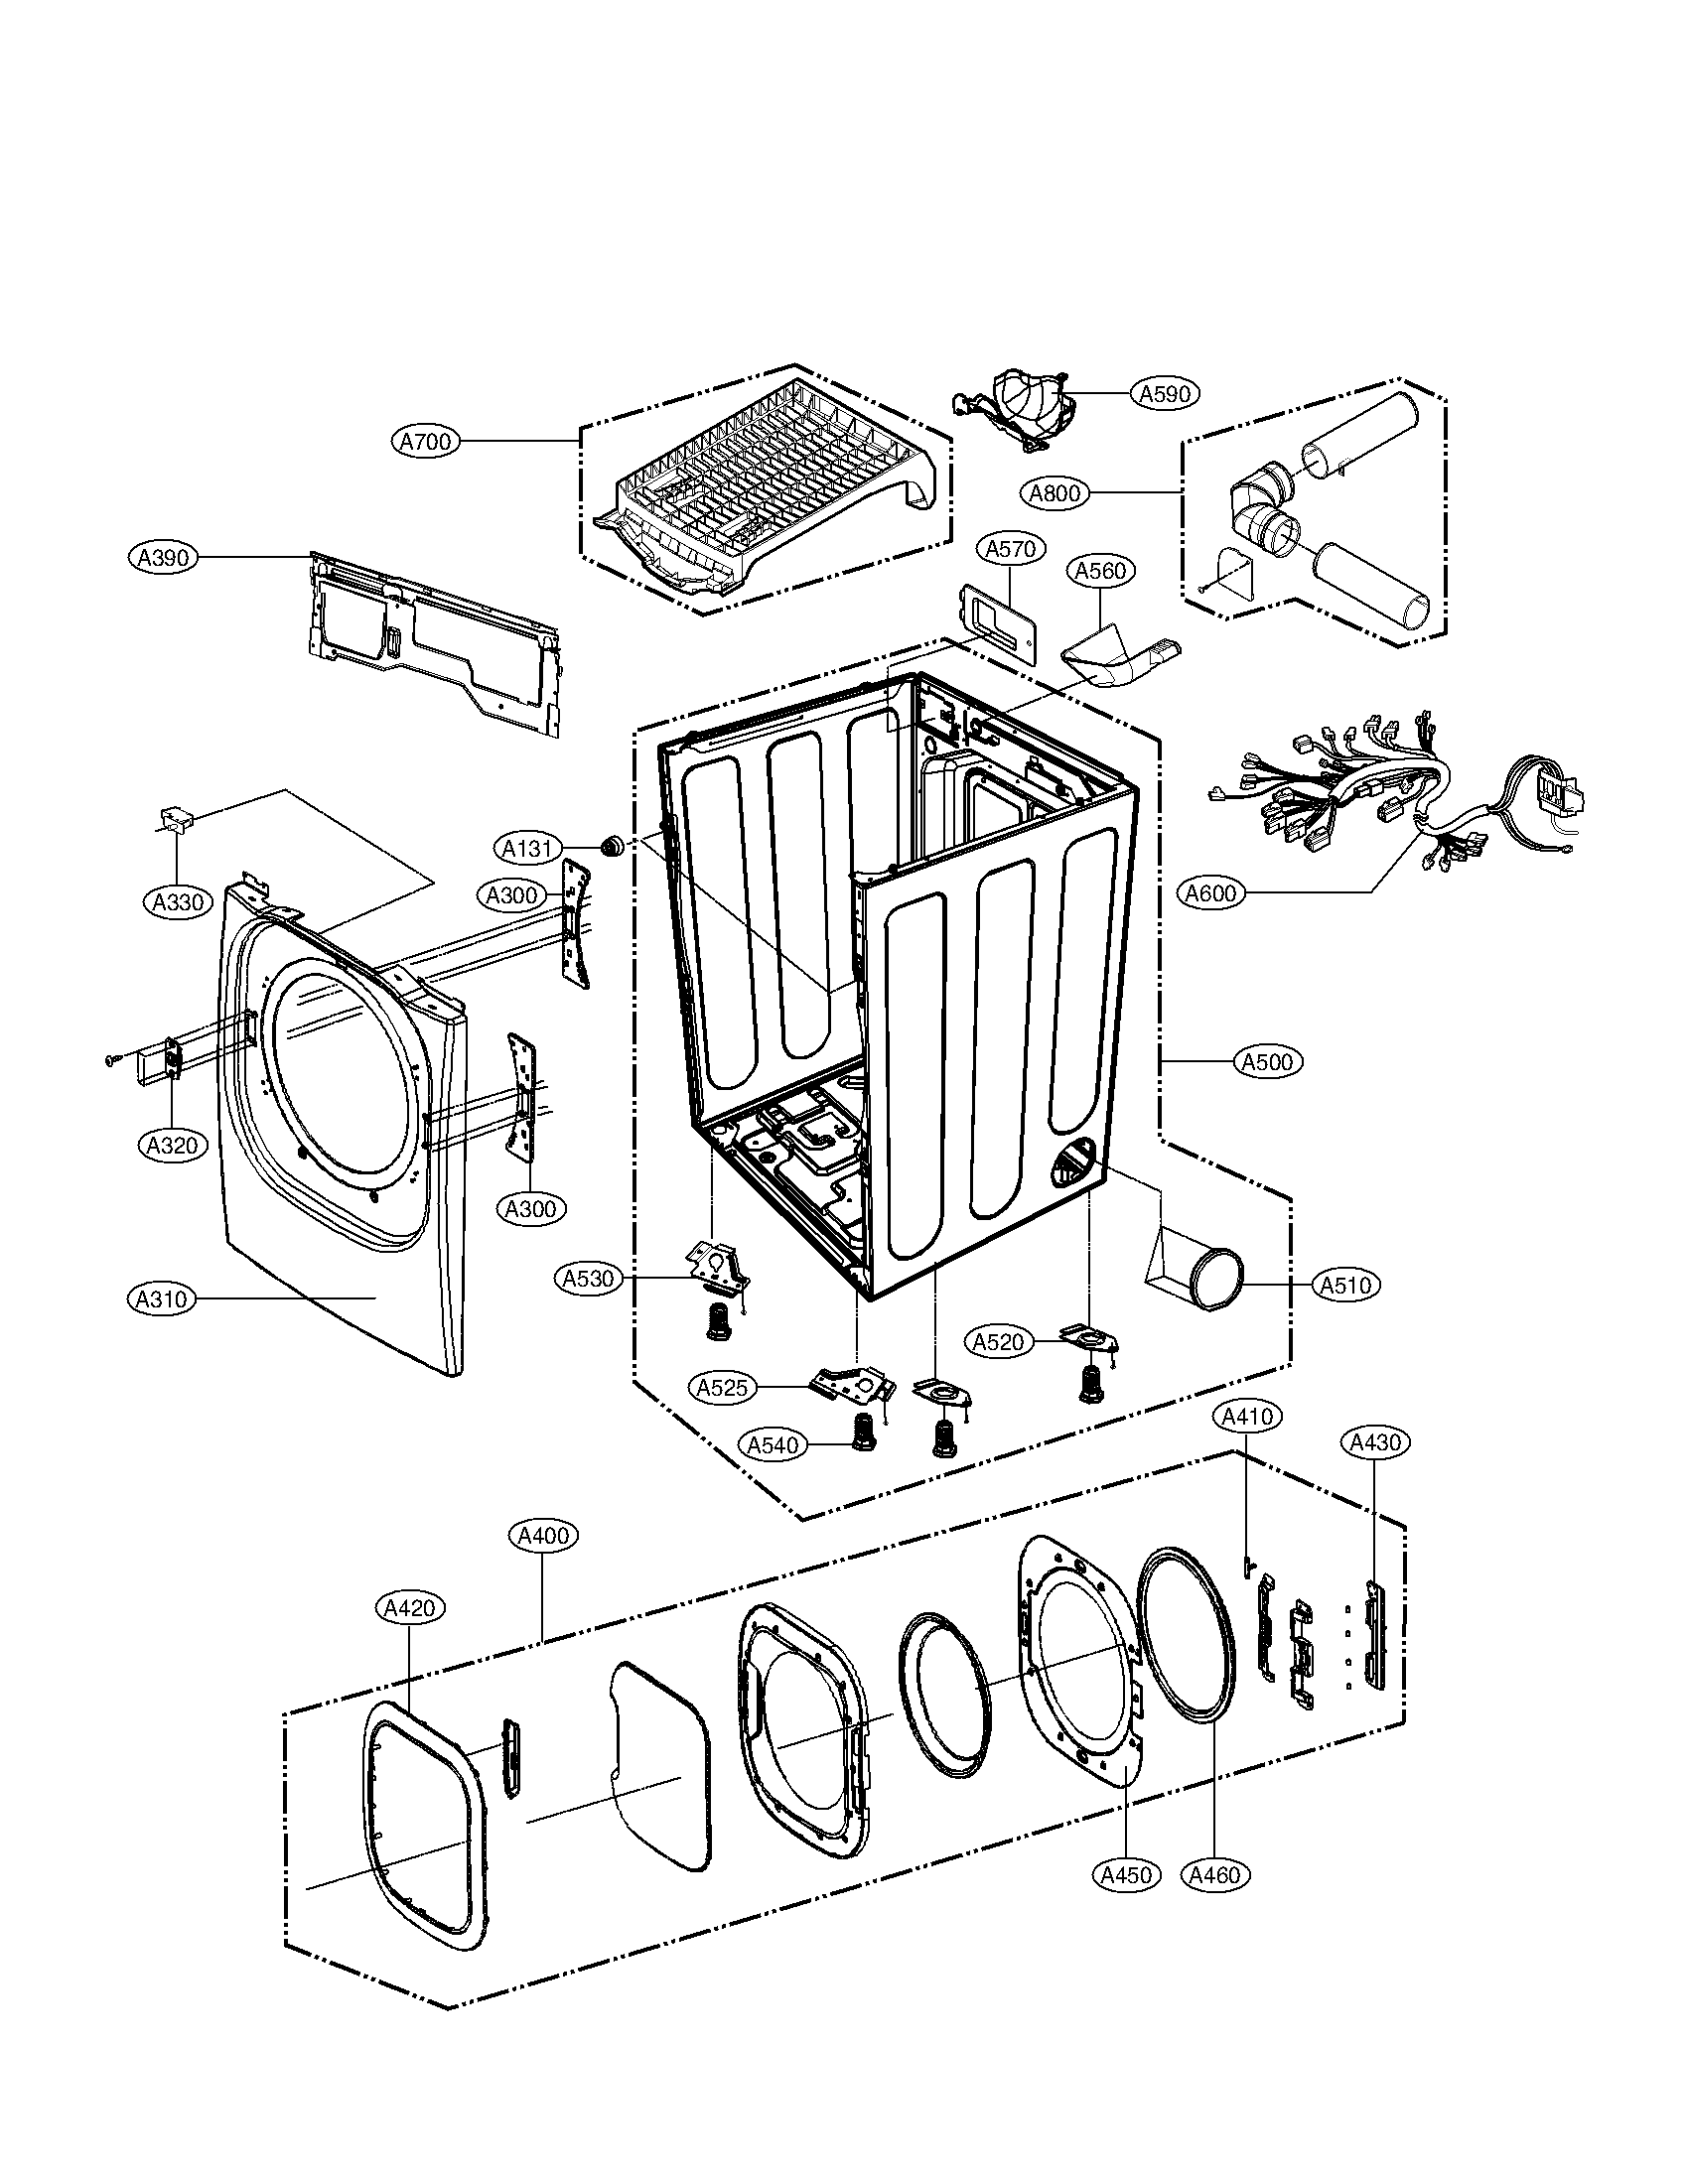 DRUM AND MOTOR PARTS Diagram & Parts List for Model